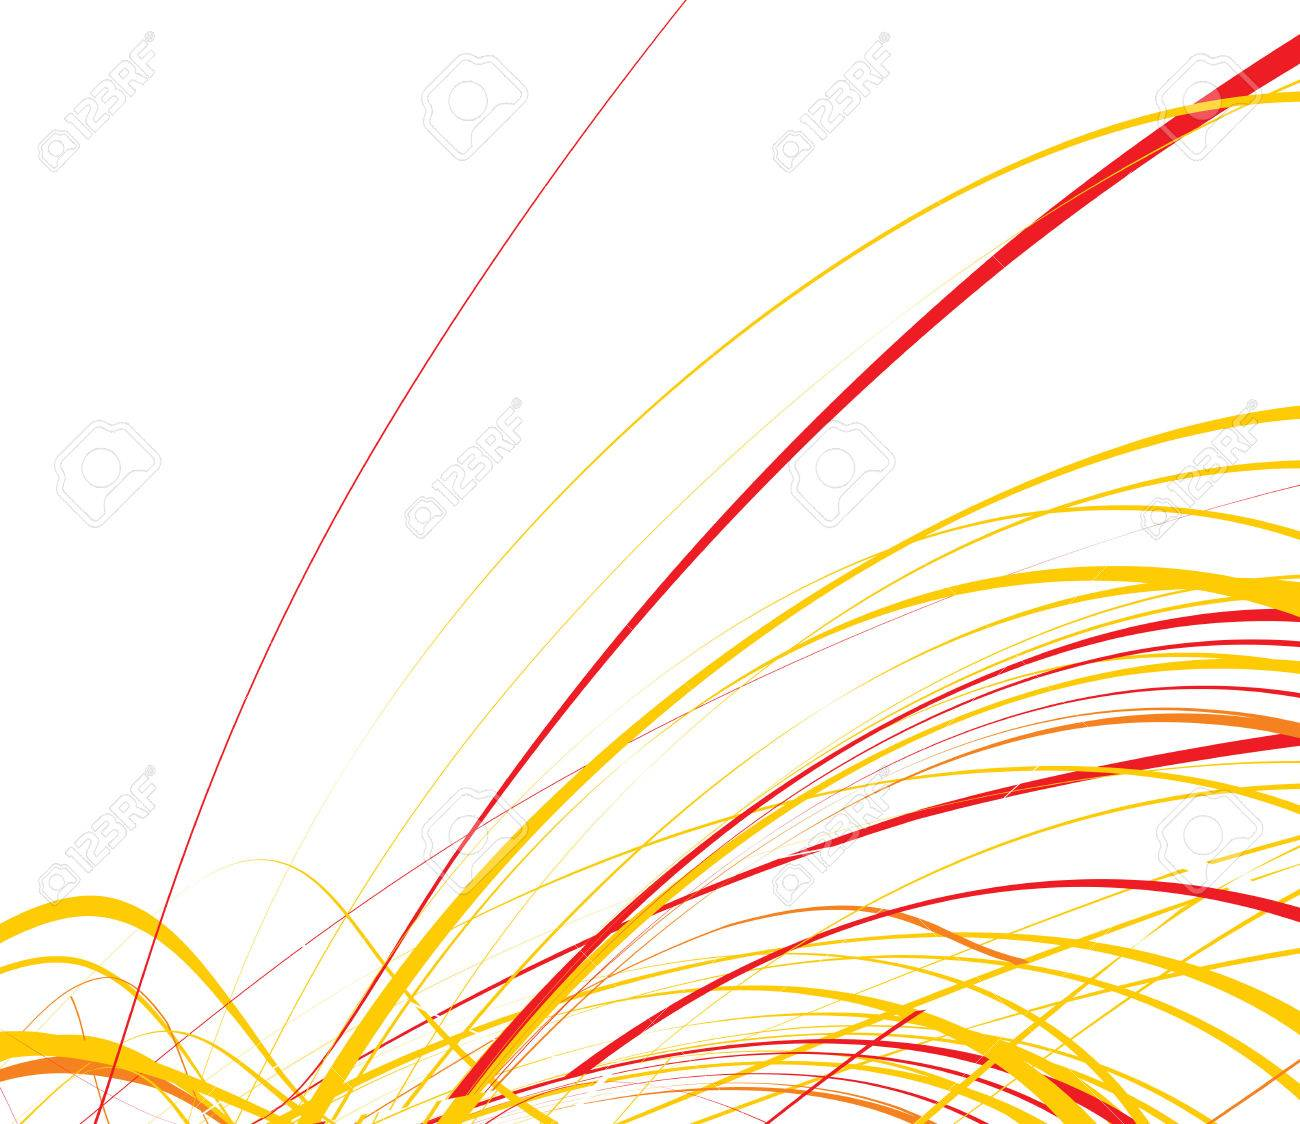 abstract wave line background, vector illustration Stock Vector - 4753175